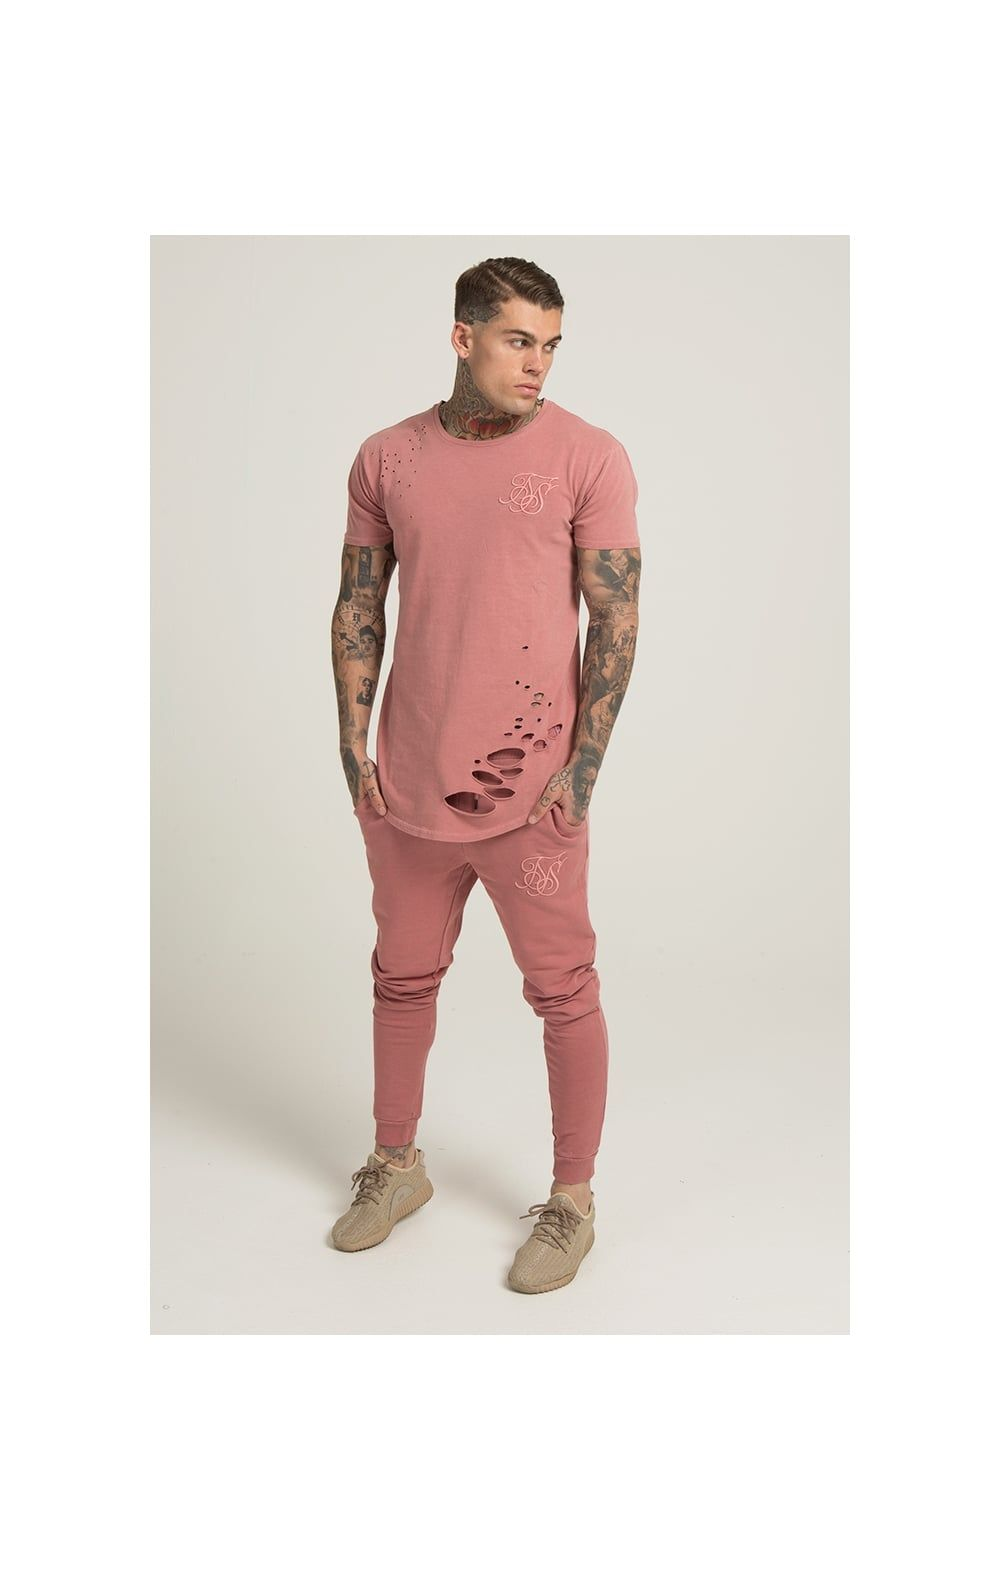 SikSilk Destroyed Curved Hem Tee - Pink  81b42aac601